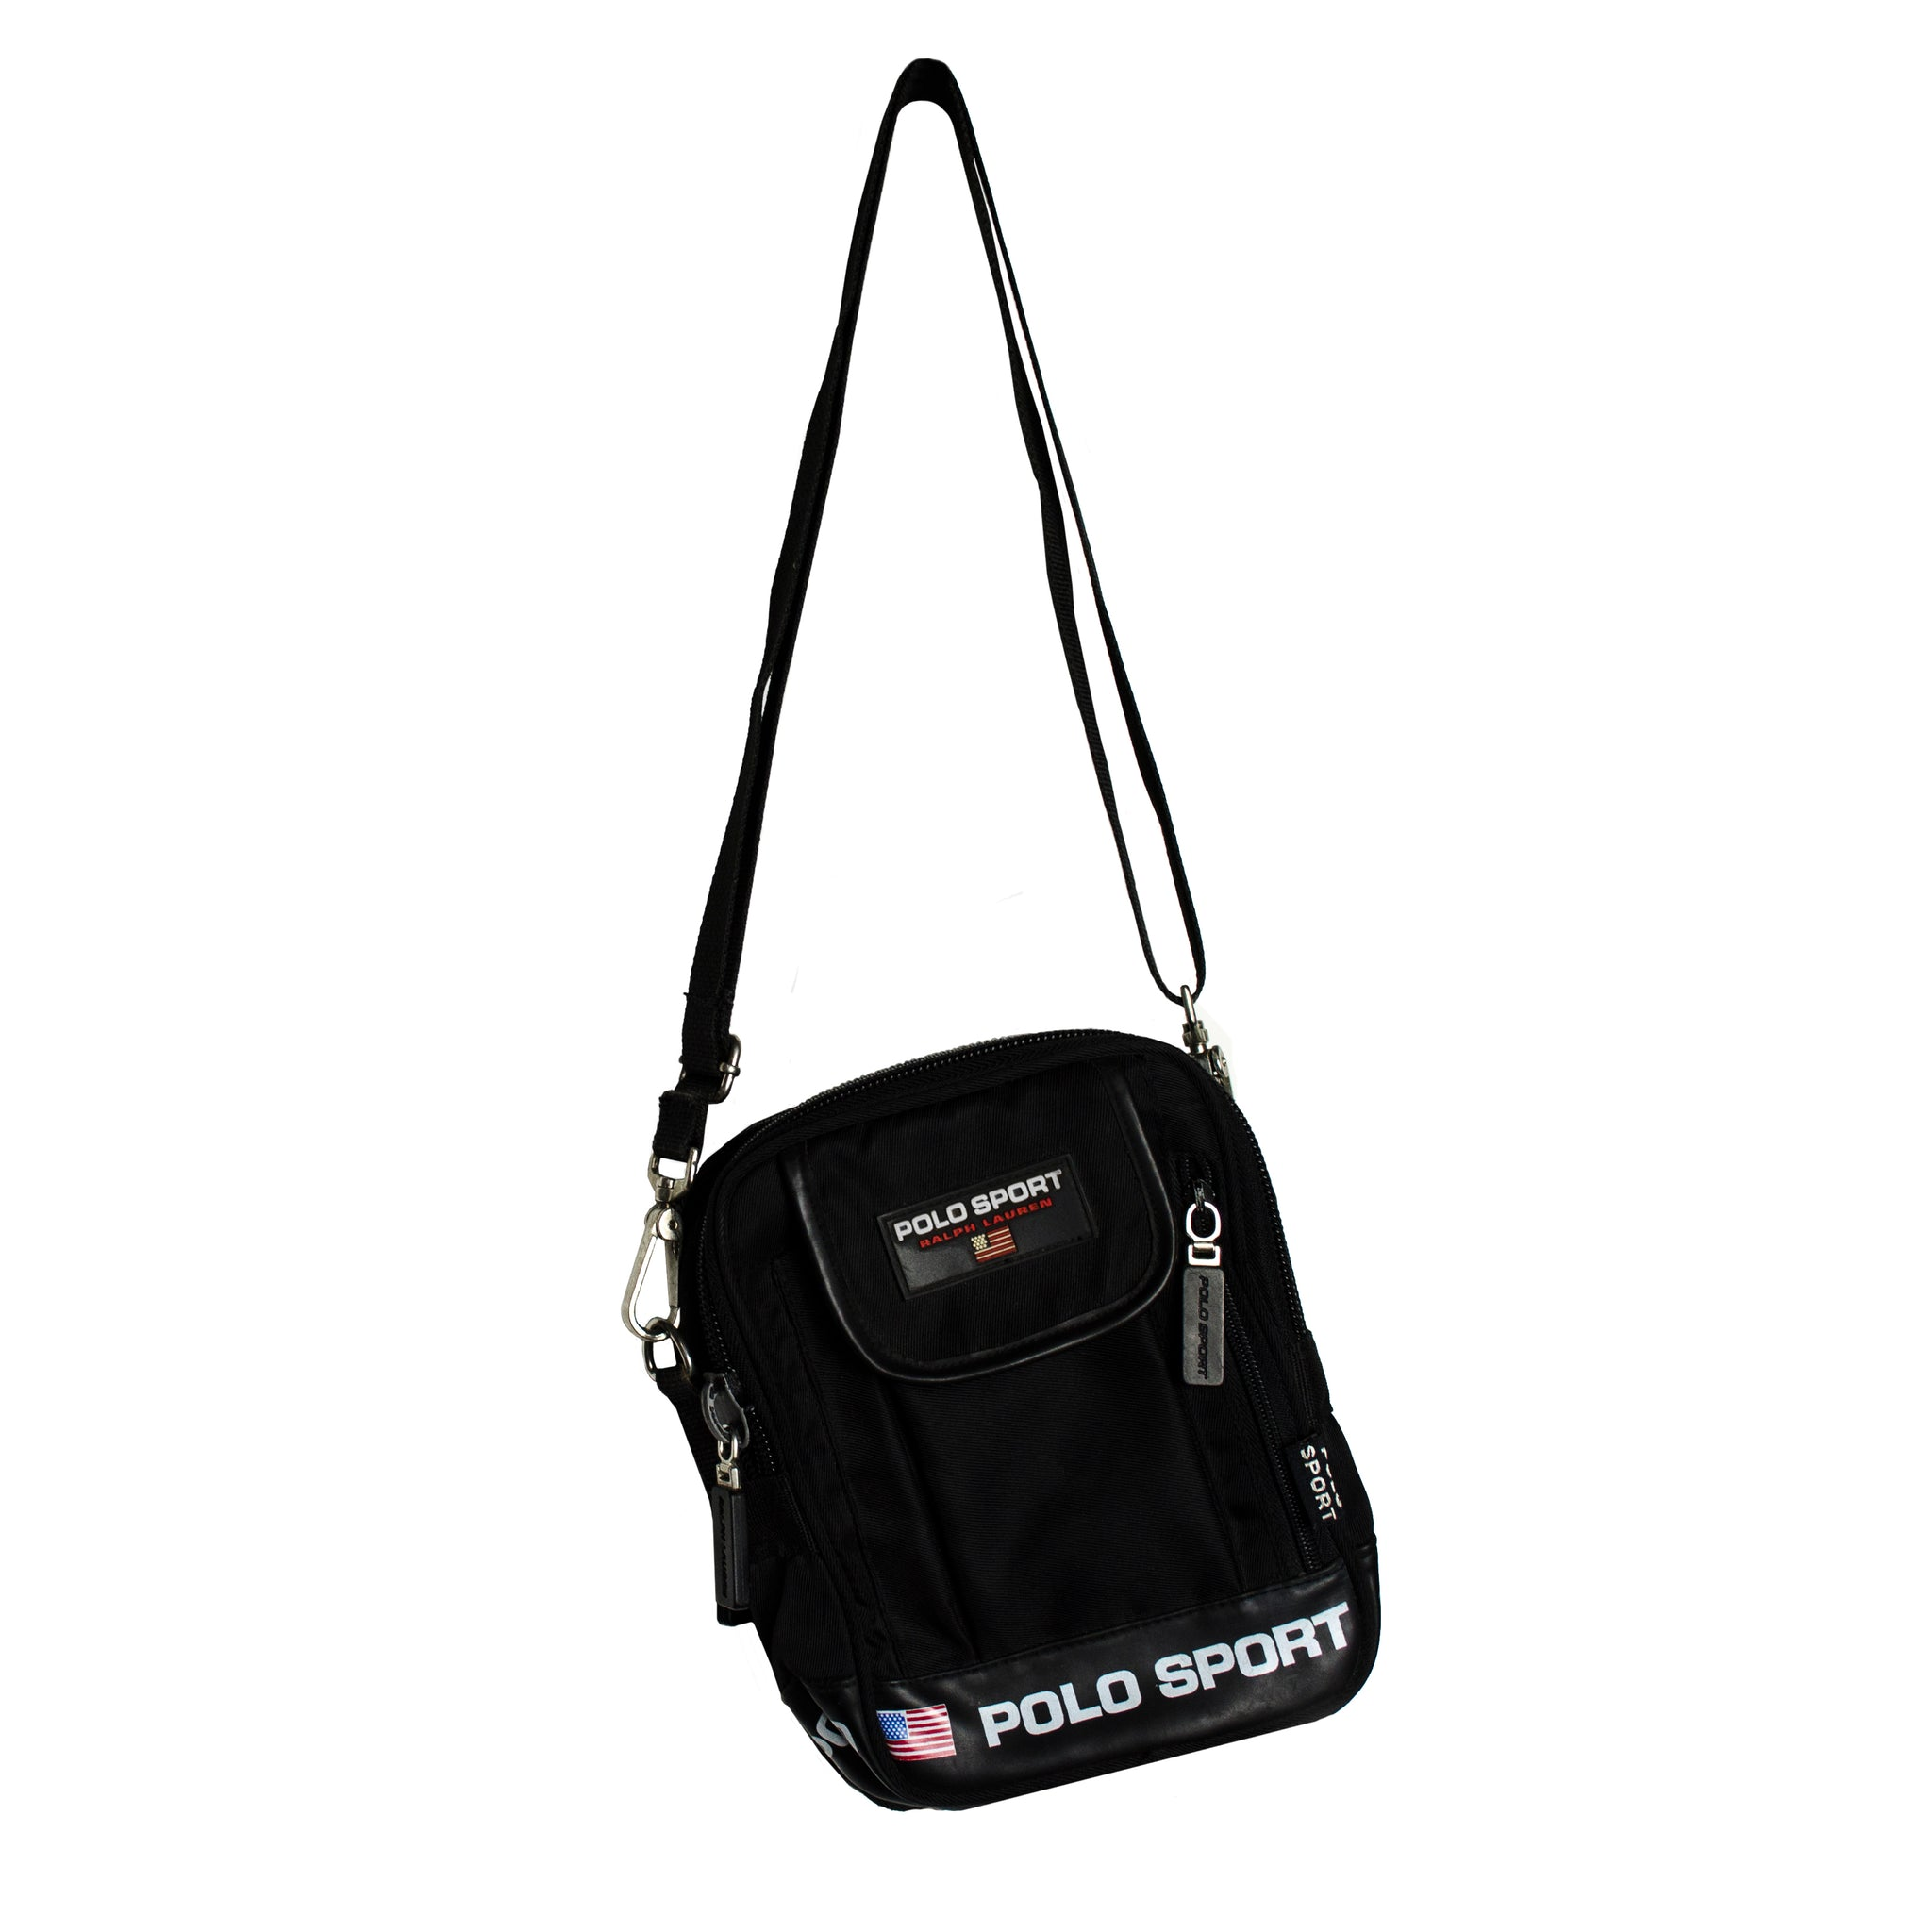 Vintage RL Polo Sport Side-bag